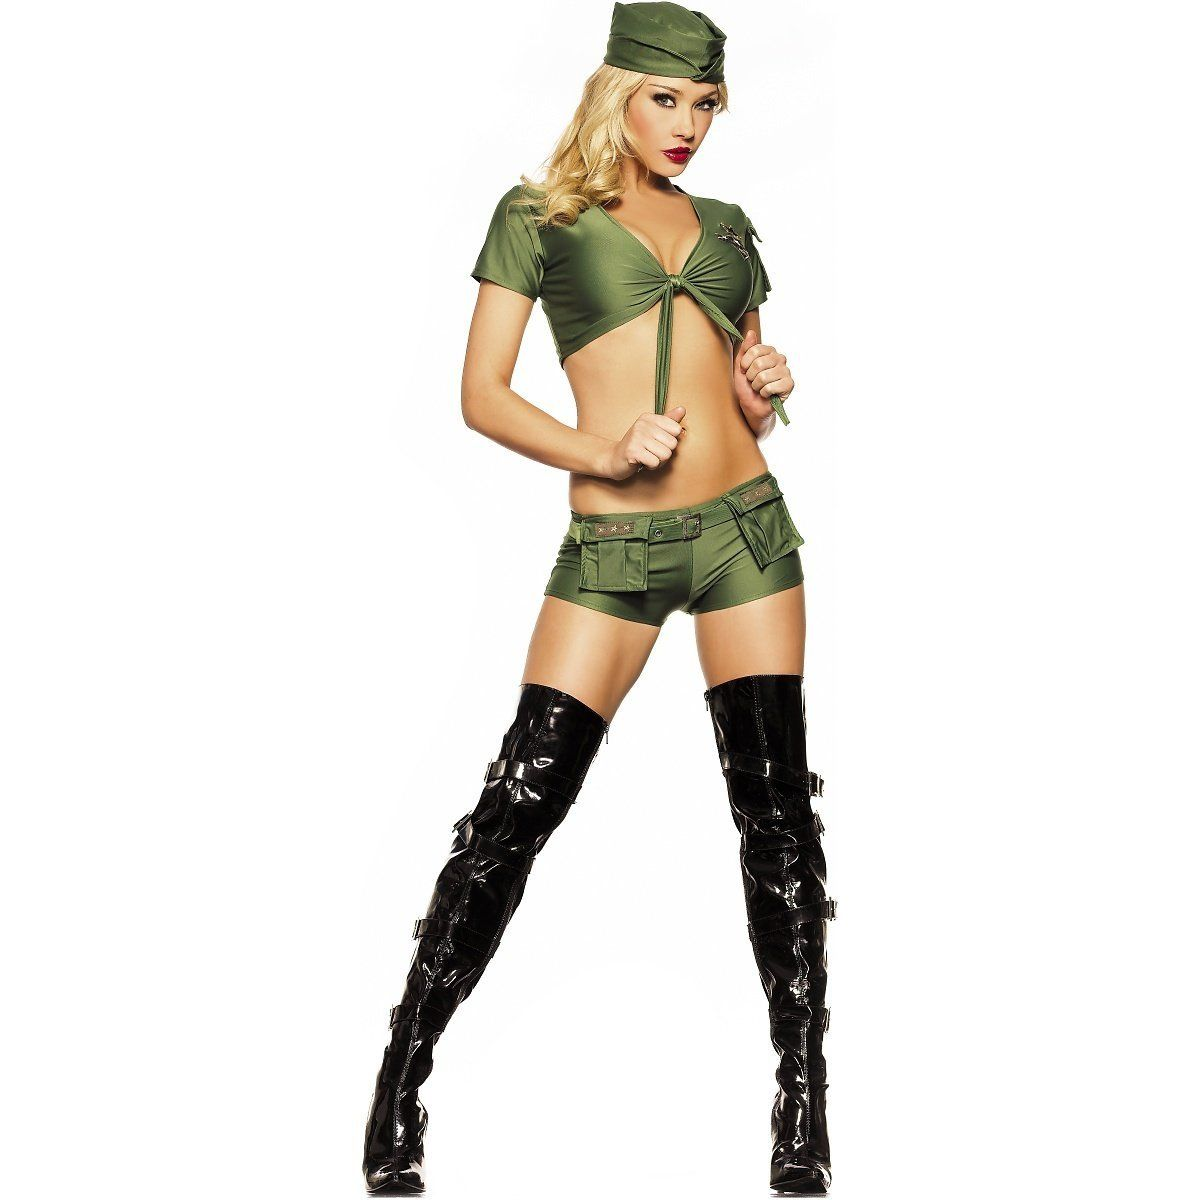 sexy-army-girl-costume-cicciolina-porn-pictures